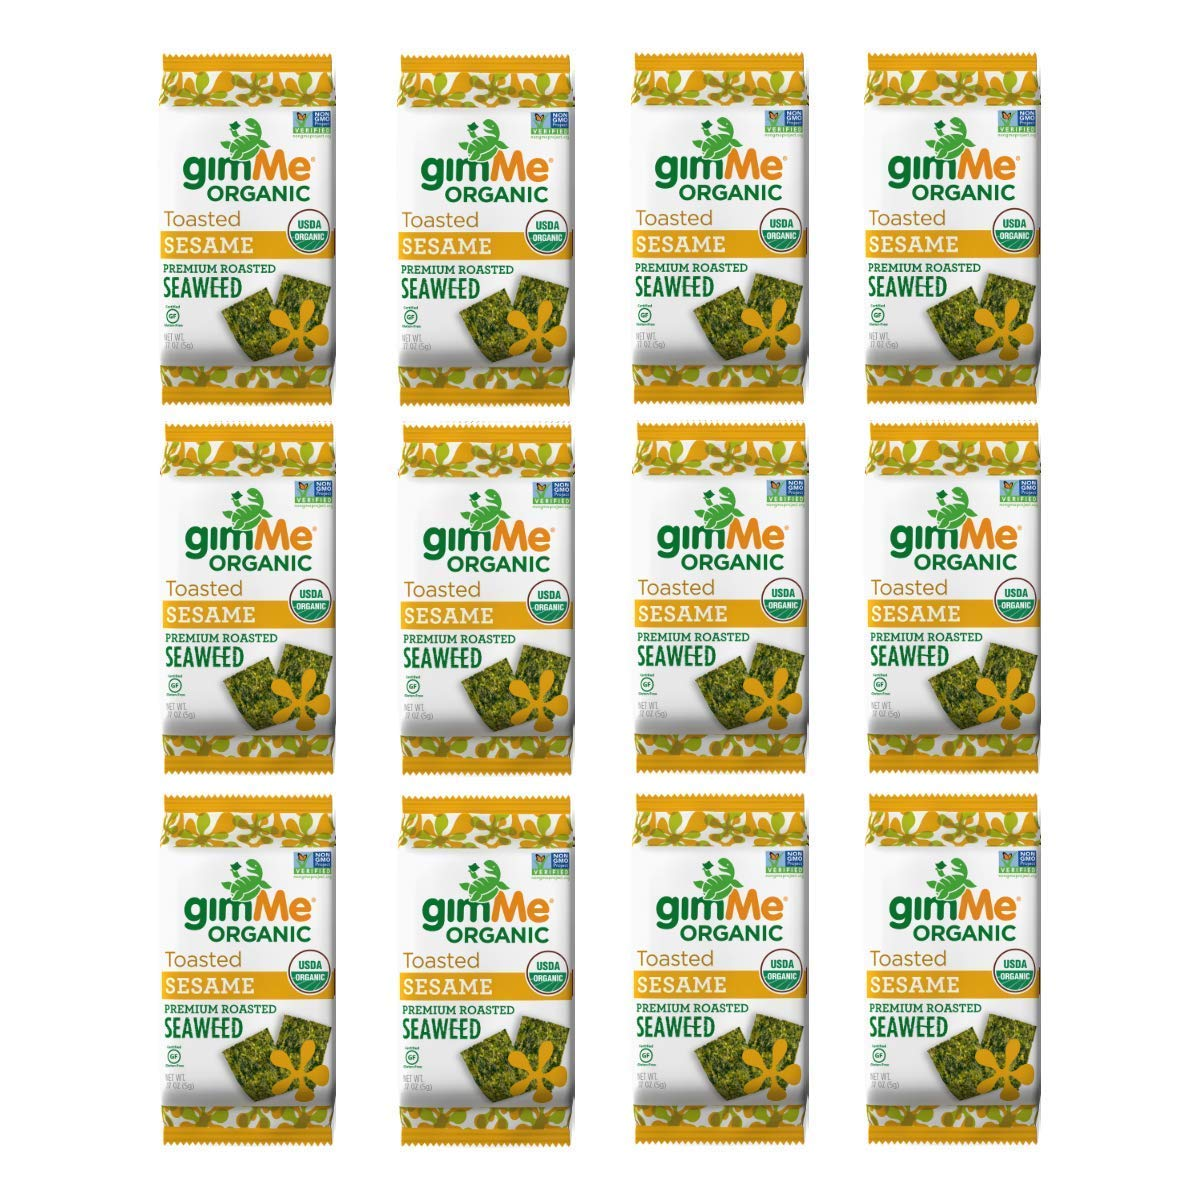 gimMe Organic Roasted Seaweed - Toasted Sesame - 12 Count - Keto, Vegan, Gluten Free - Great Source of Iodine and Omega 3's - Healthy On-The-Go Snack for Kids & Adults